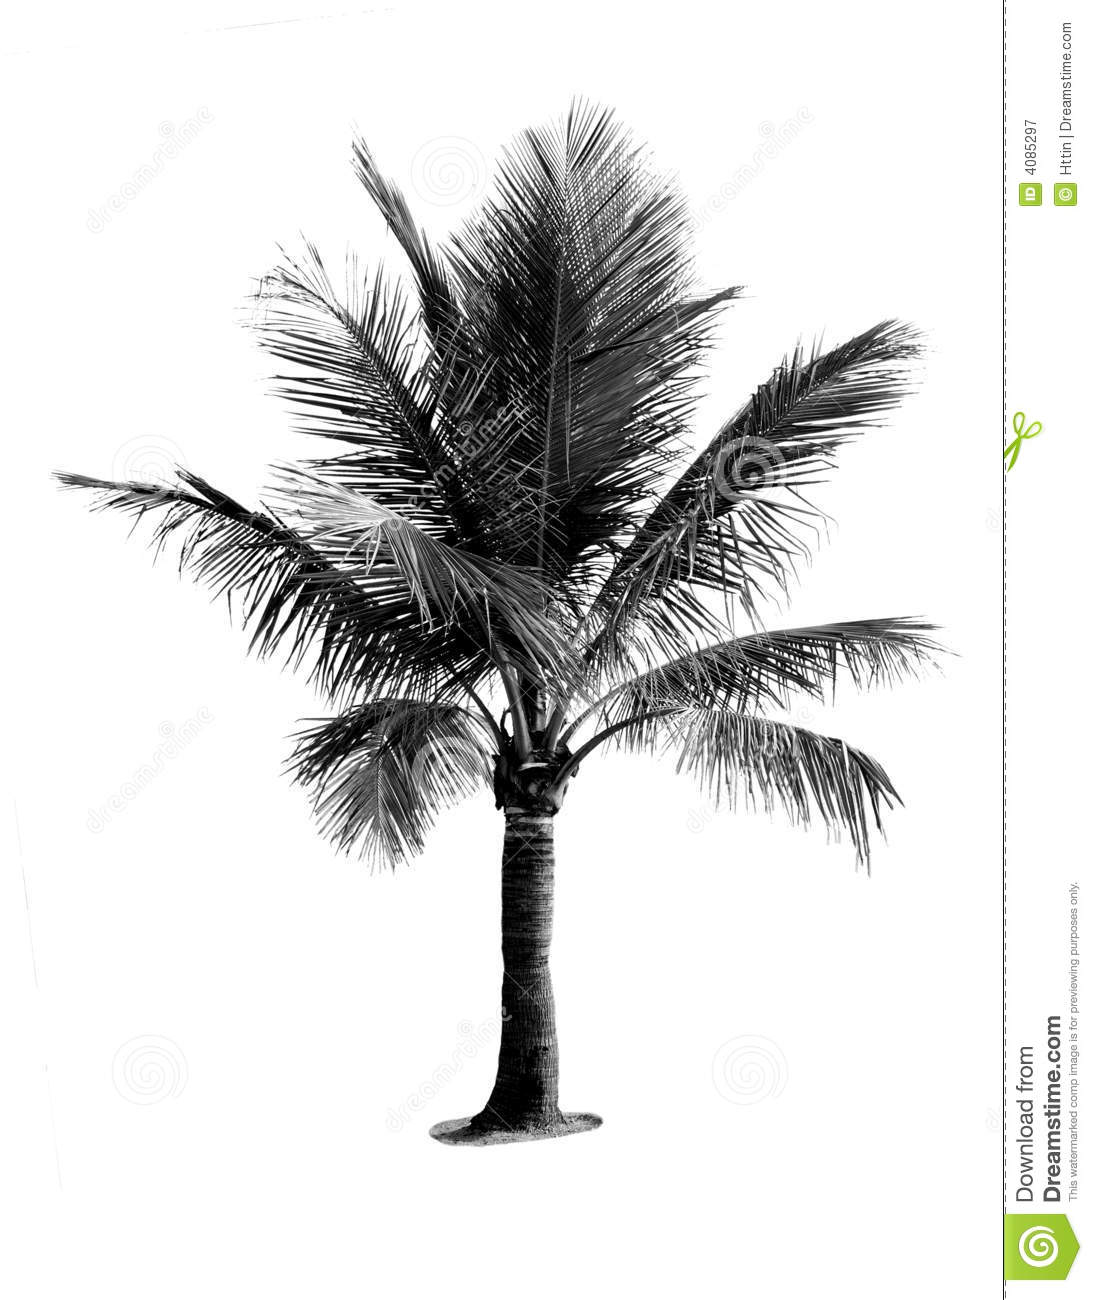 Black And White Coconut Tree Stock Image